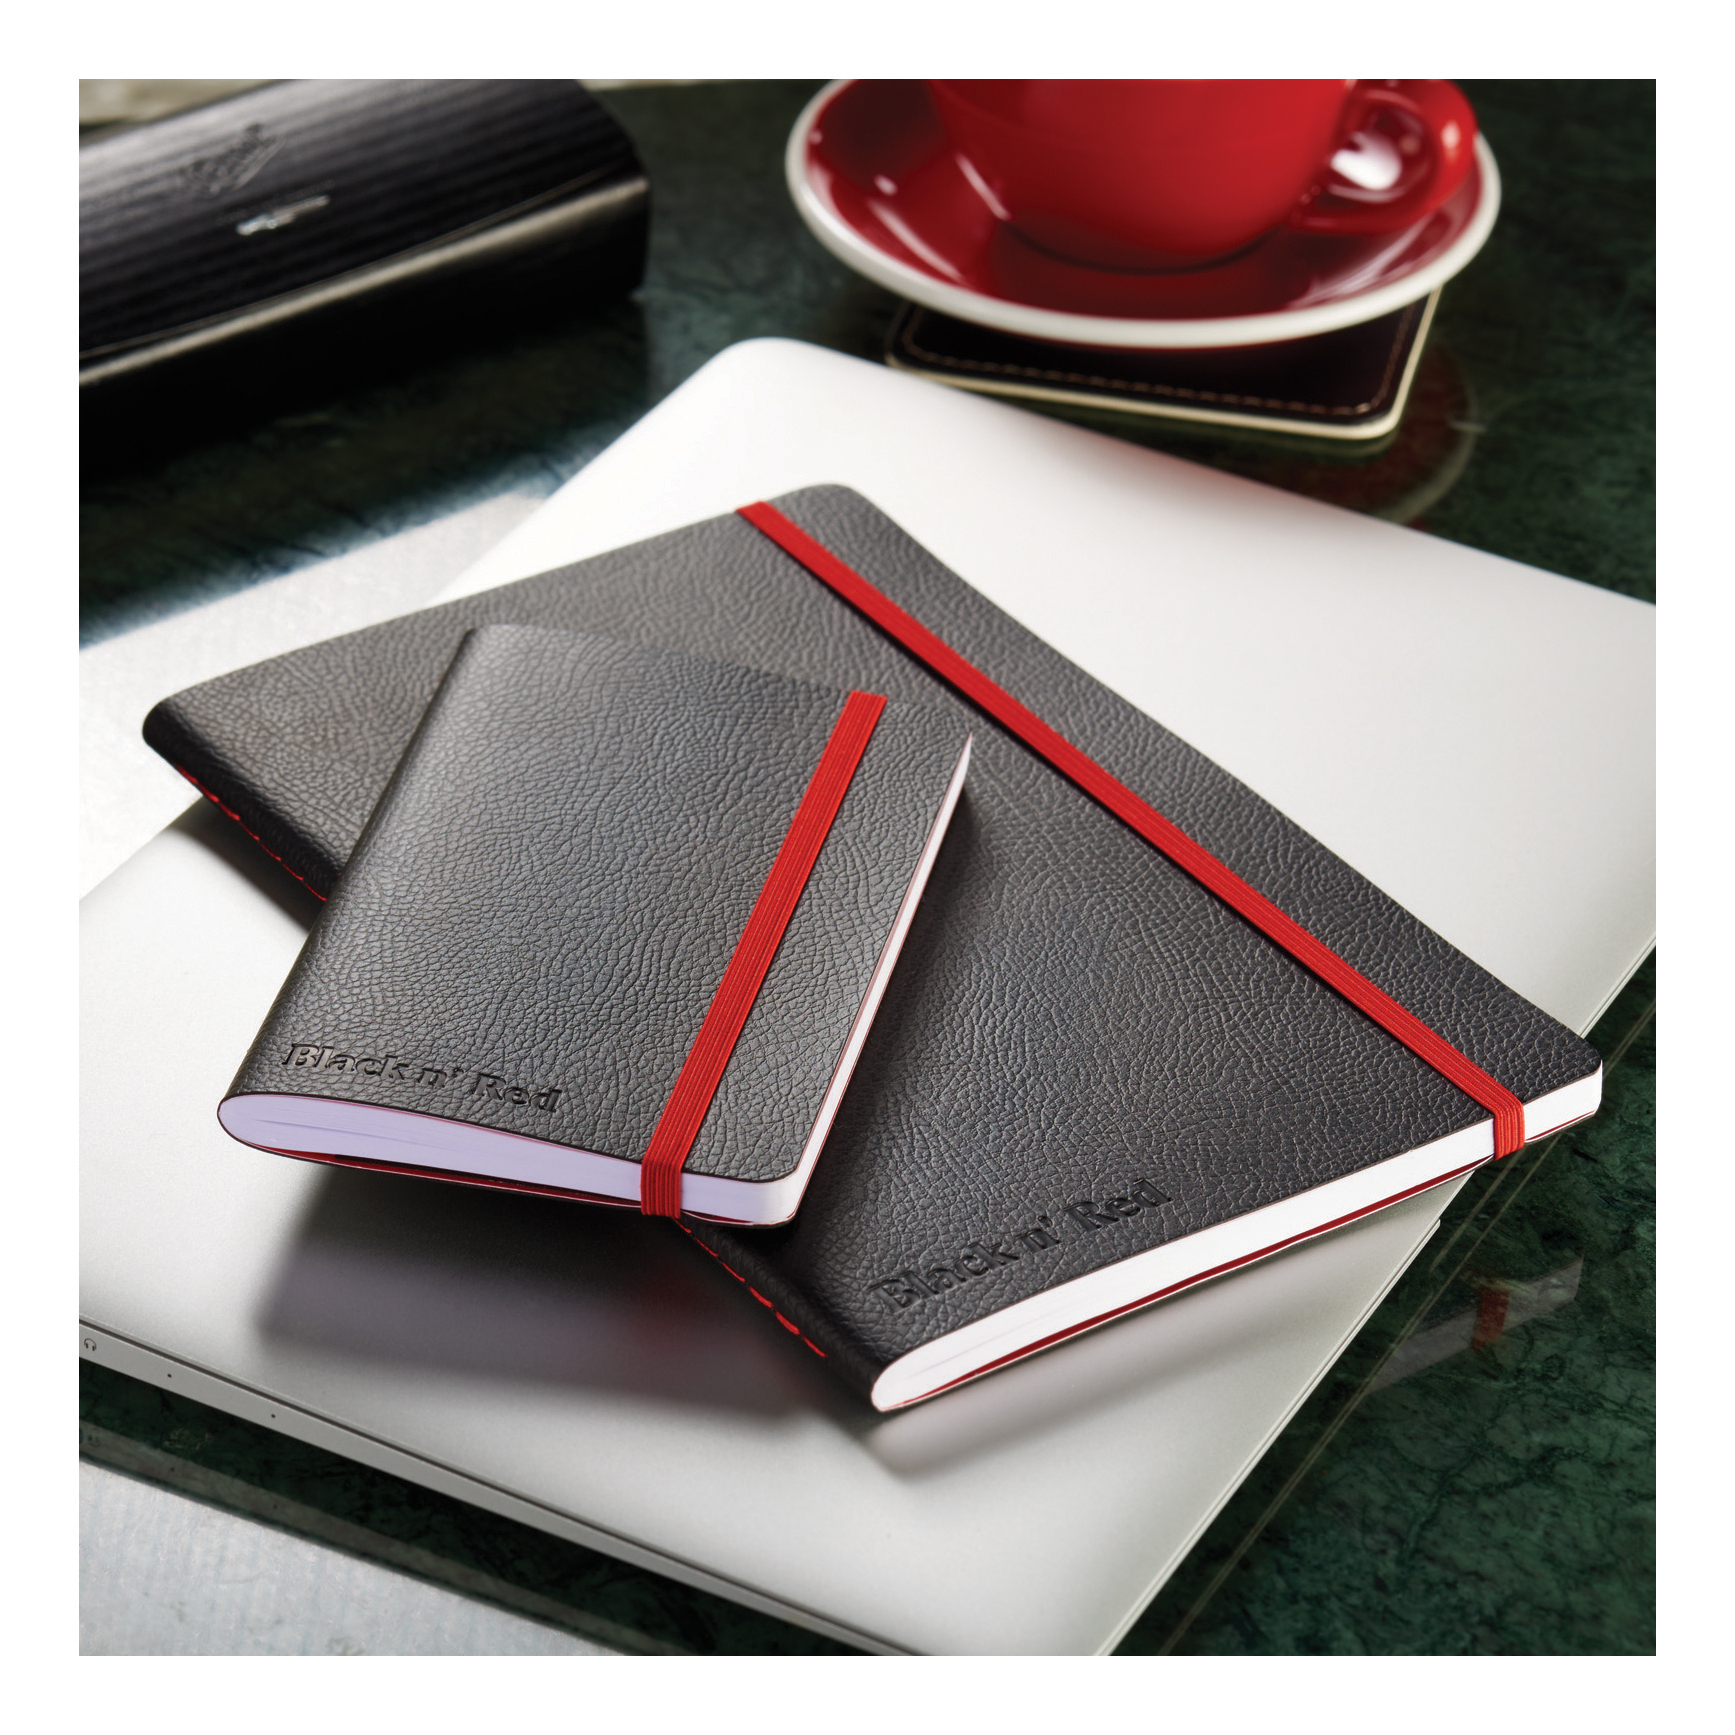 Black By Black n Red Business Journal Soft Cover Ruled and Numbered 144pp B5 Ref 400051203 PRICE OFFER